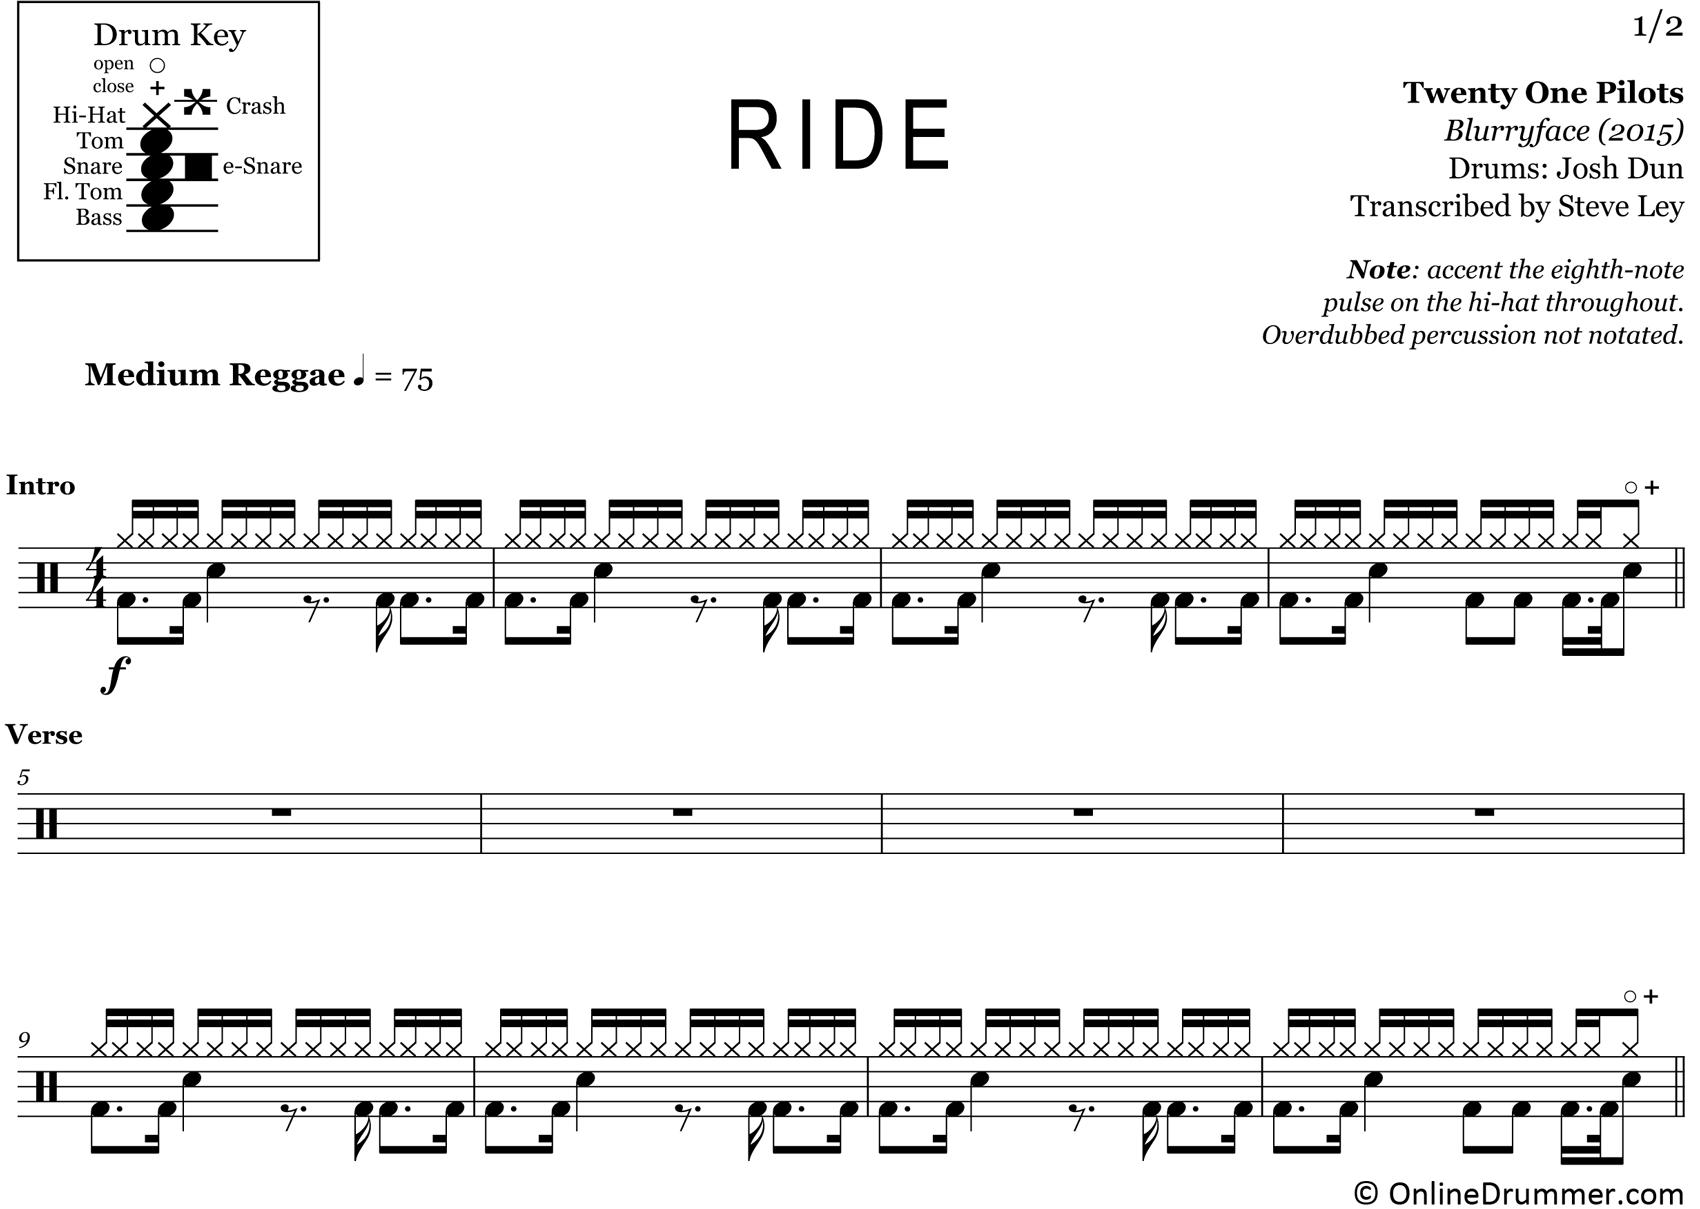 Ride - Twenty One Pilots - Drum Sheet Music